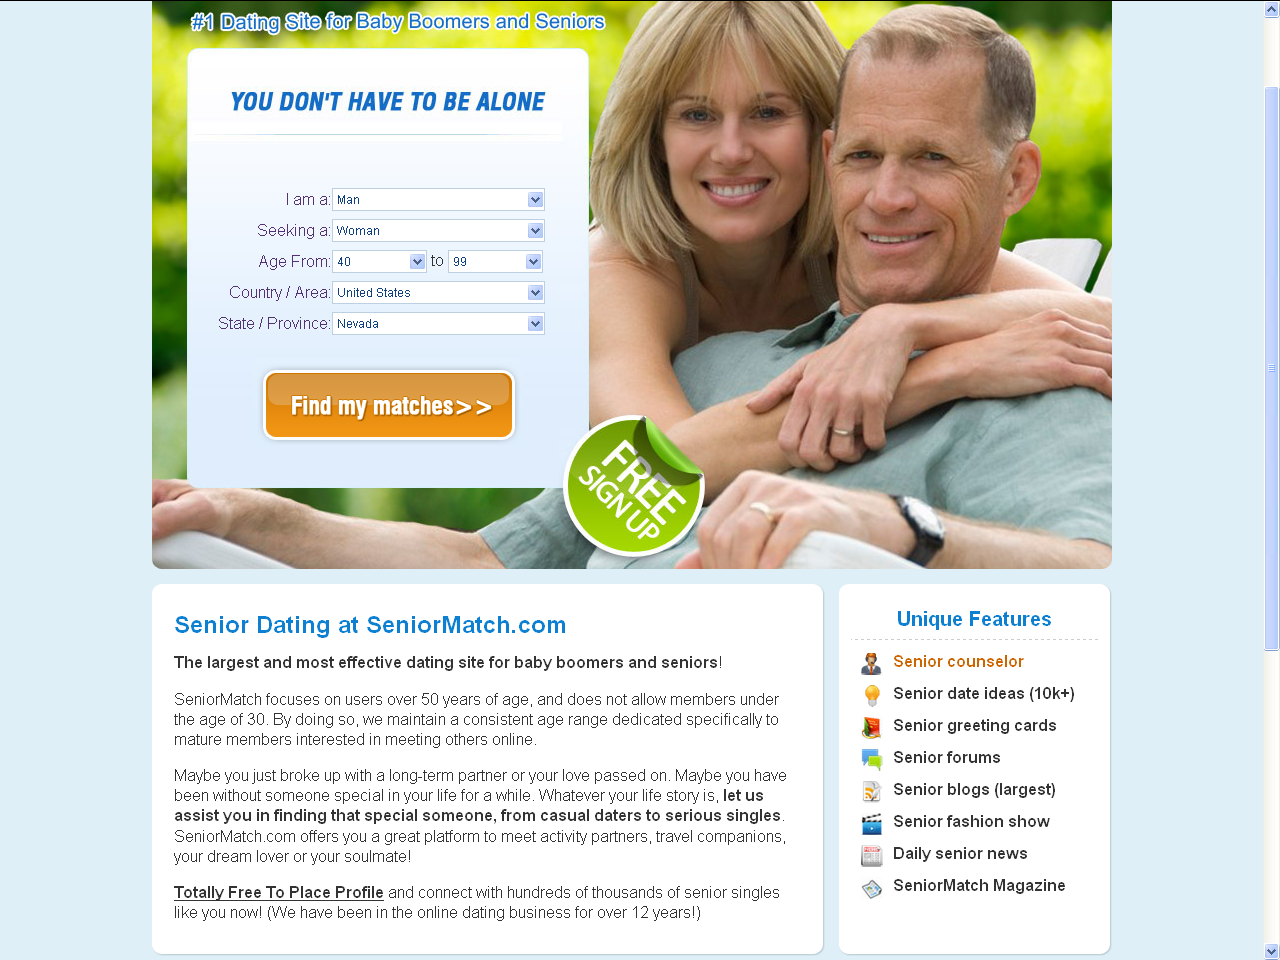 ruffin senior dating site Latino senior dating is part of the online connections dating network, which includes many other general and senior dating sites as a member of latino senior dating, your profile will automatically be shown on related senior dating sites or to related users in the online connections network at no additional charge.